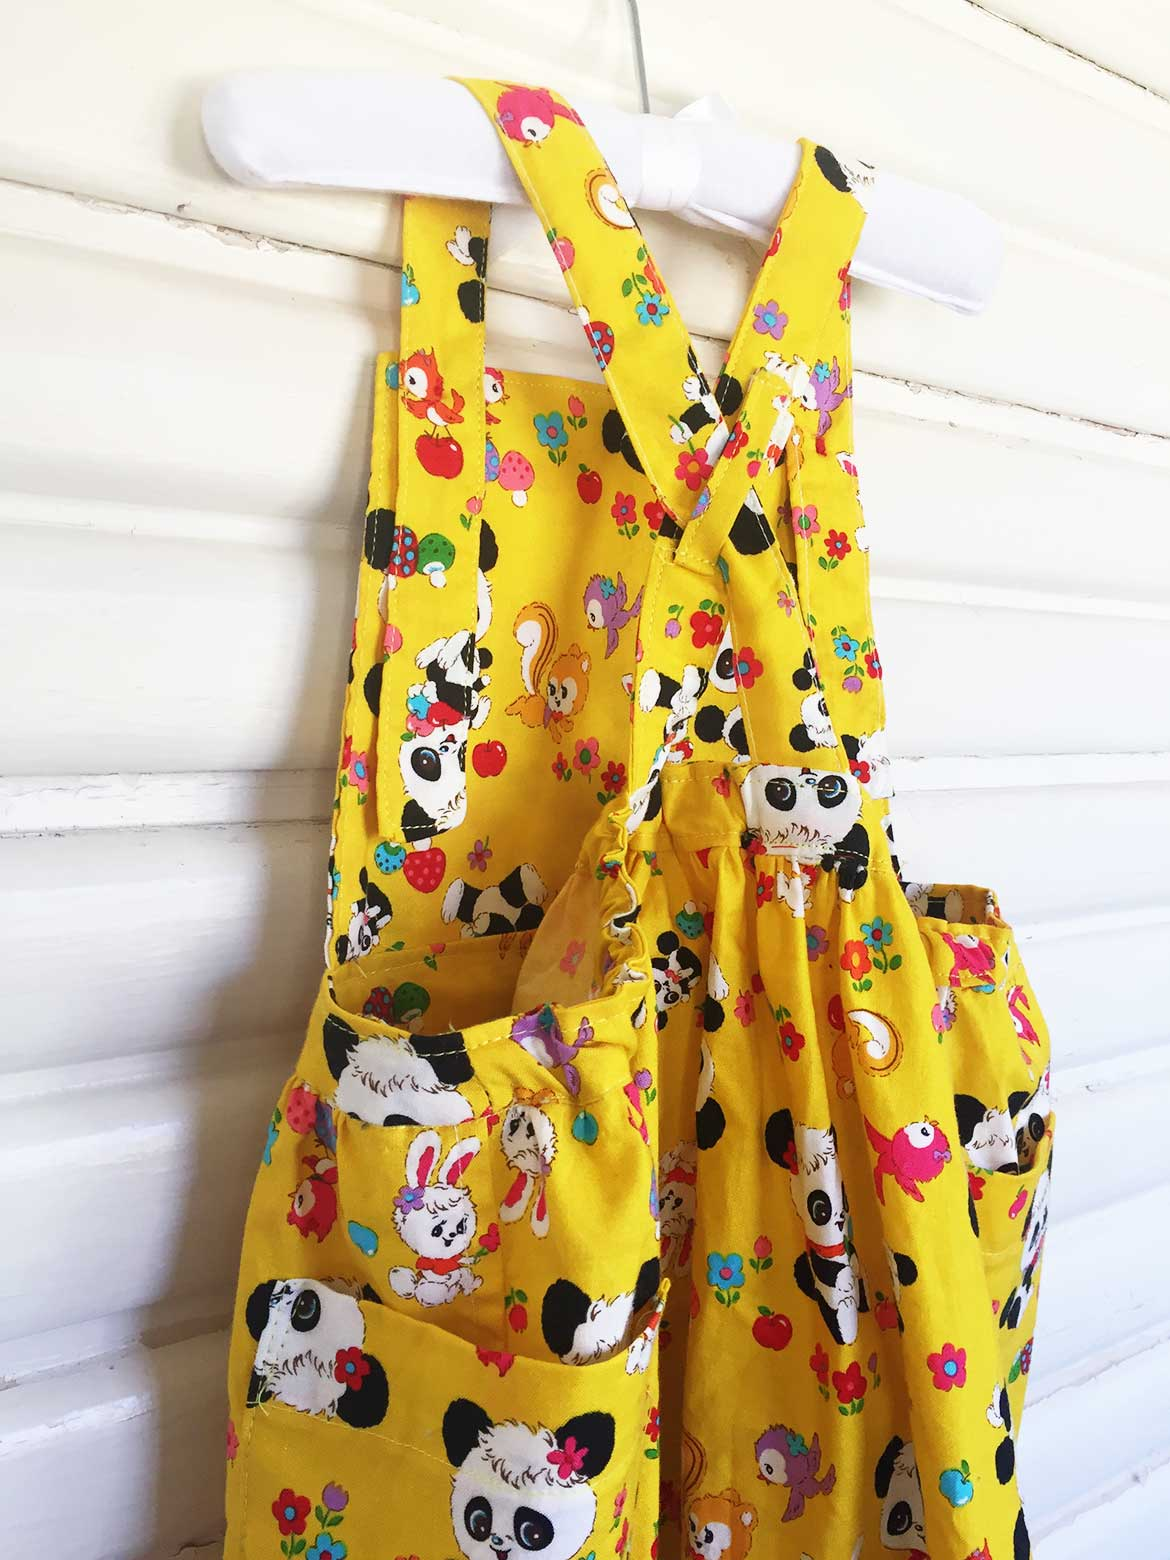 Kids Apron Dress Sewing Pattern | This adorable pinafore apron dress is from the Japanese sewing pattern book, A Sunny Spot. I made it out of a panda print fabric for my daughter's second birthday. See more photos at www.sewinlove.com.au